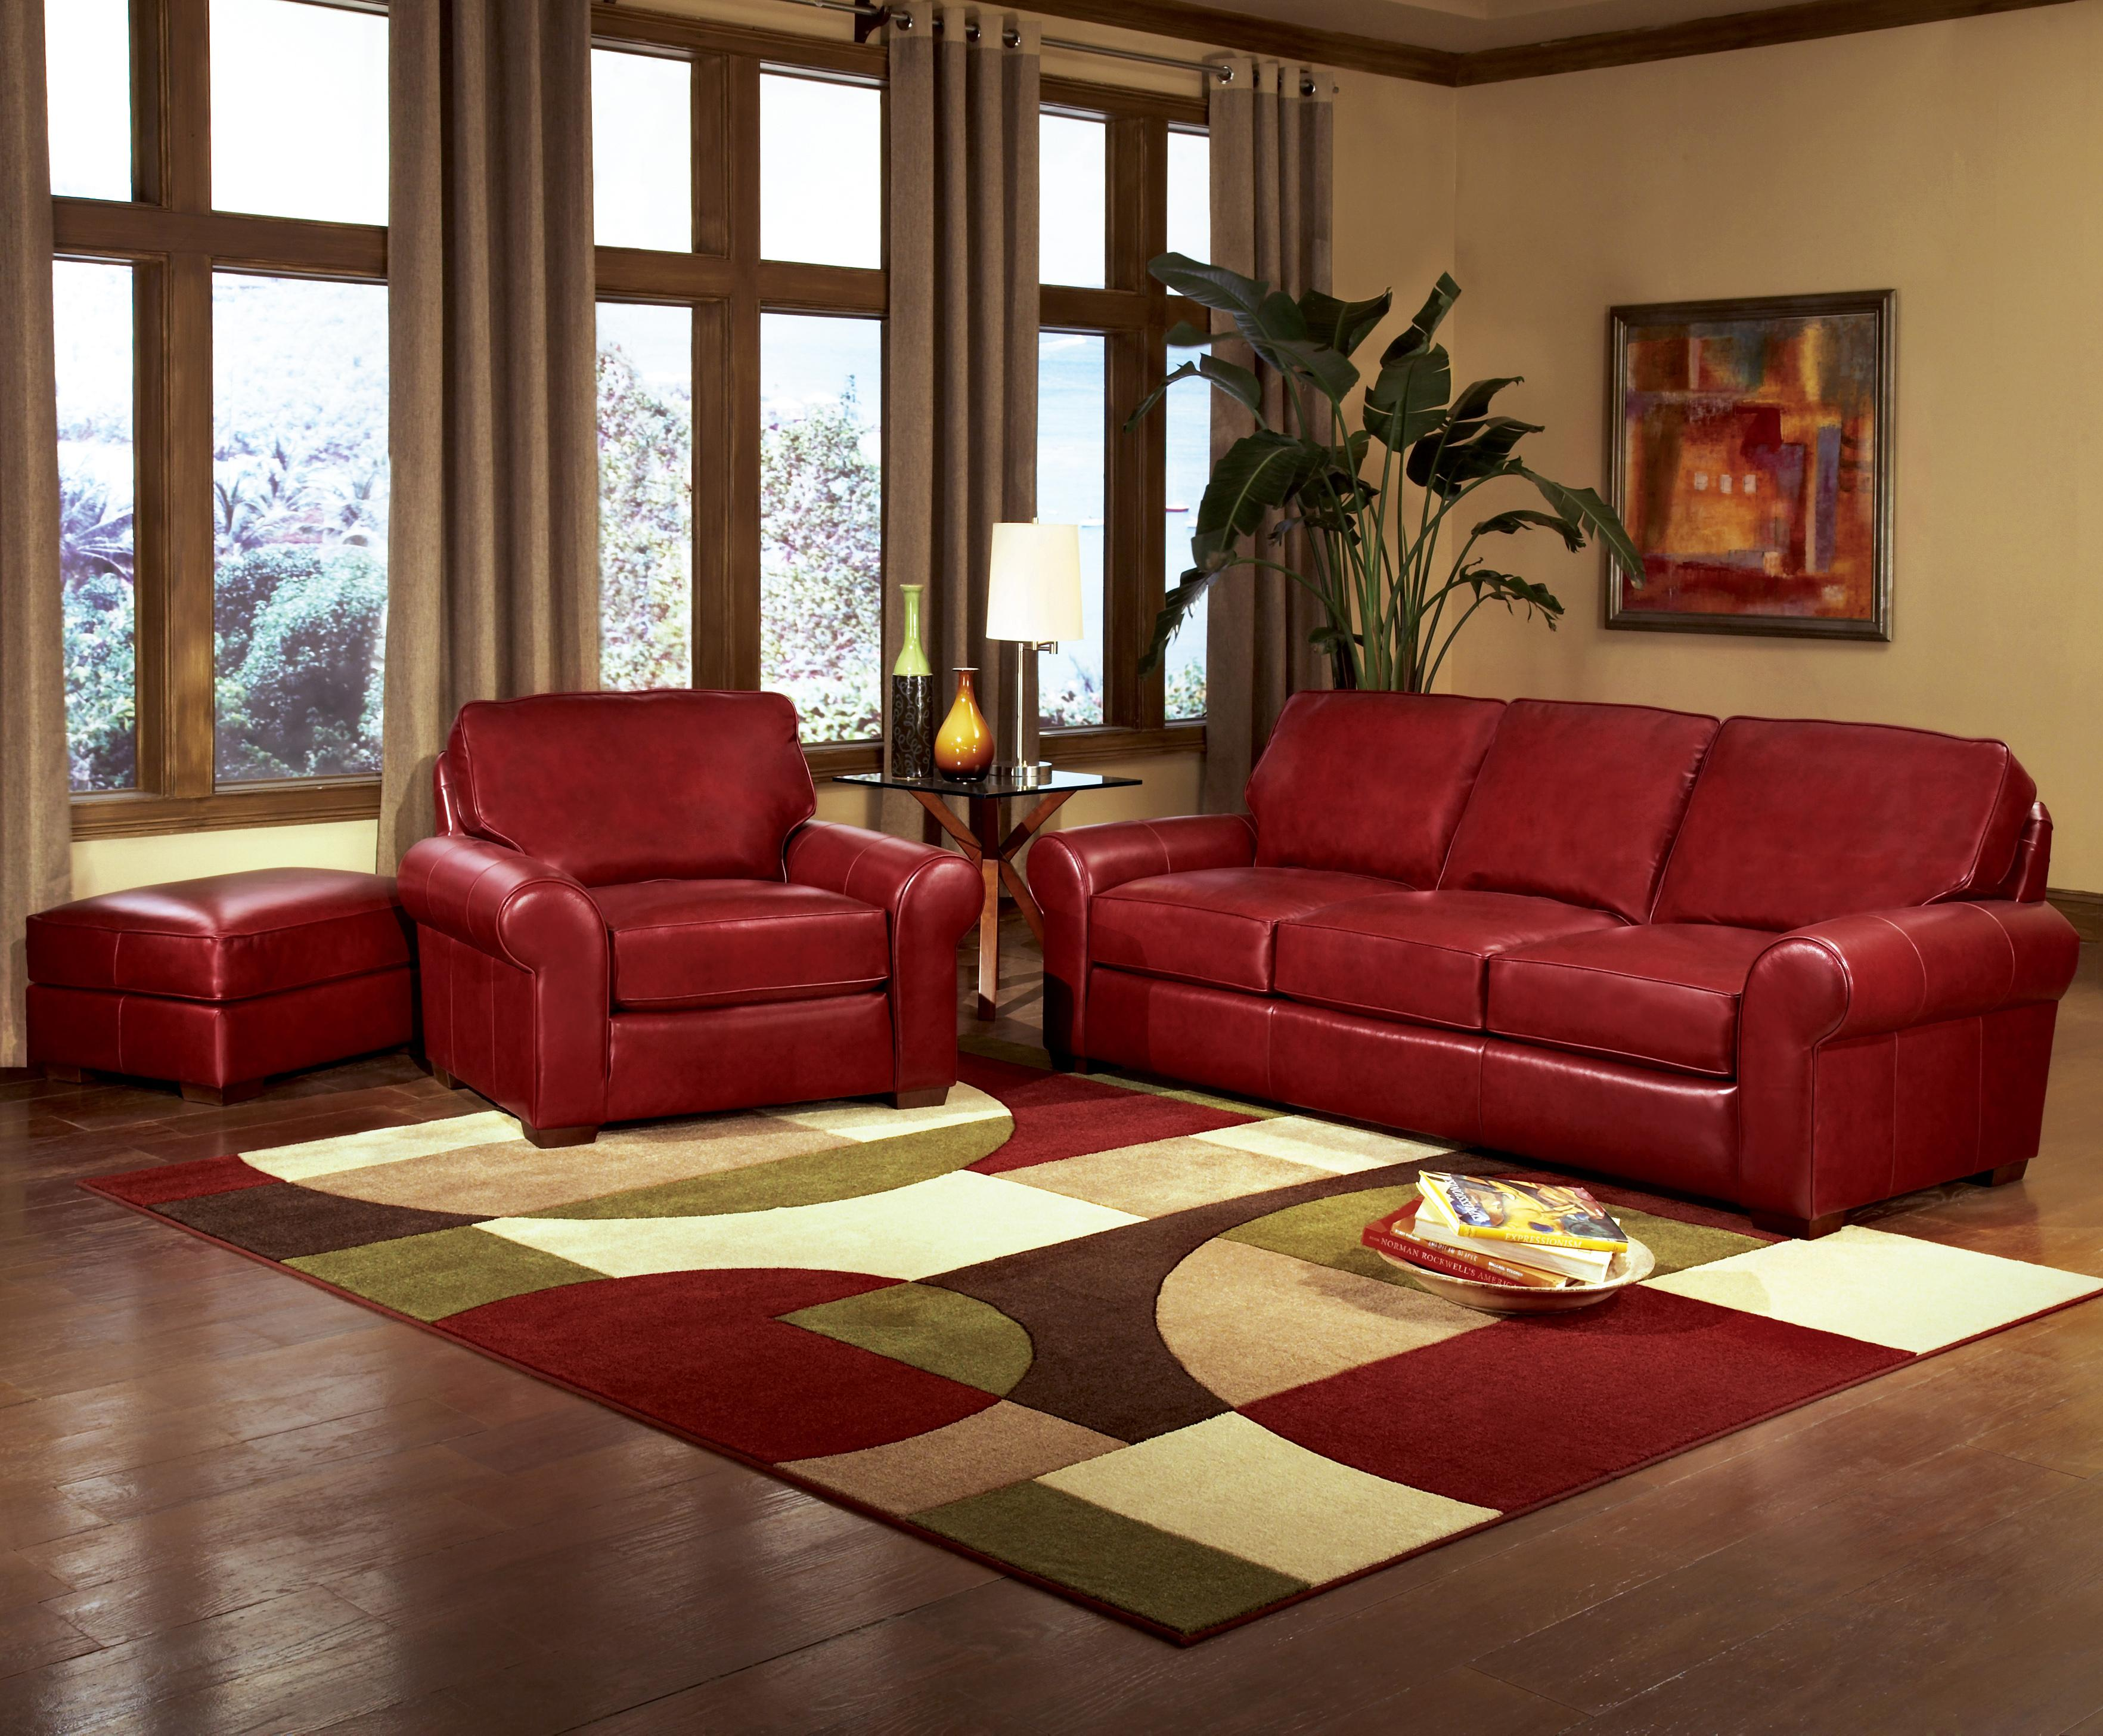 build your own sofa online single arm smith brothers 8000 series classic casual